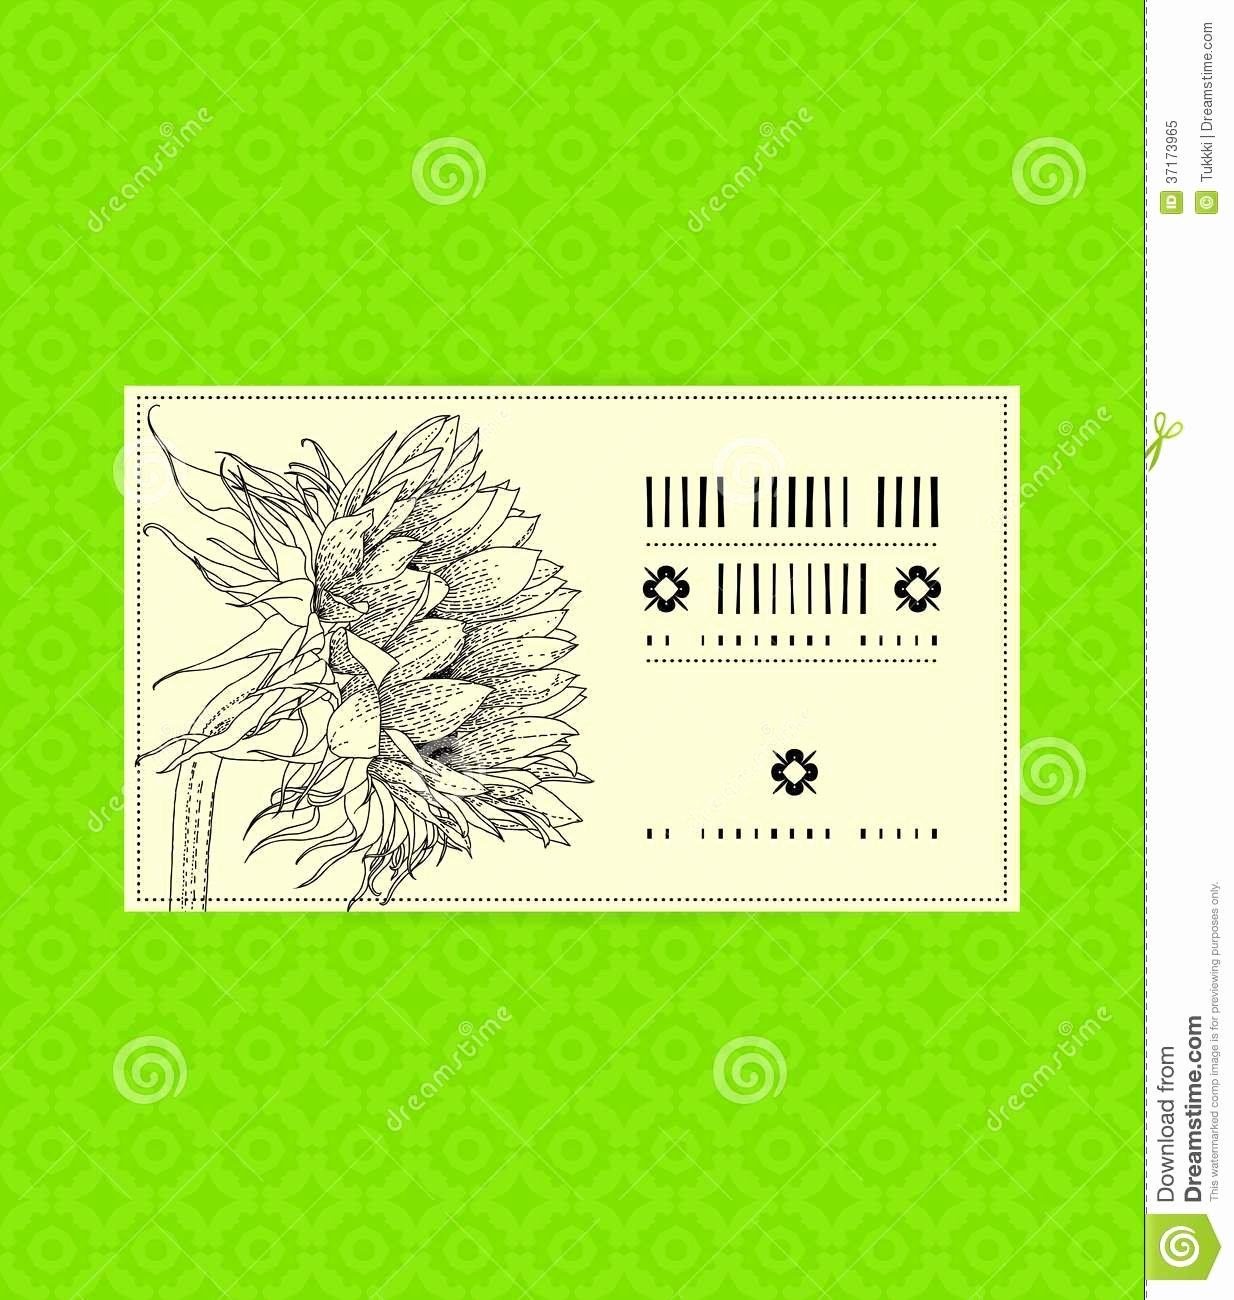 Flower Shop Business Cards Lovely Vintage Card with Sunflower Royalty Free Stock Image